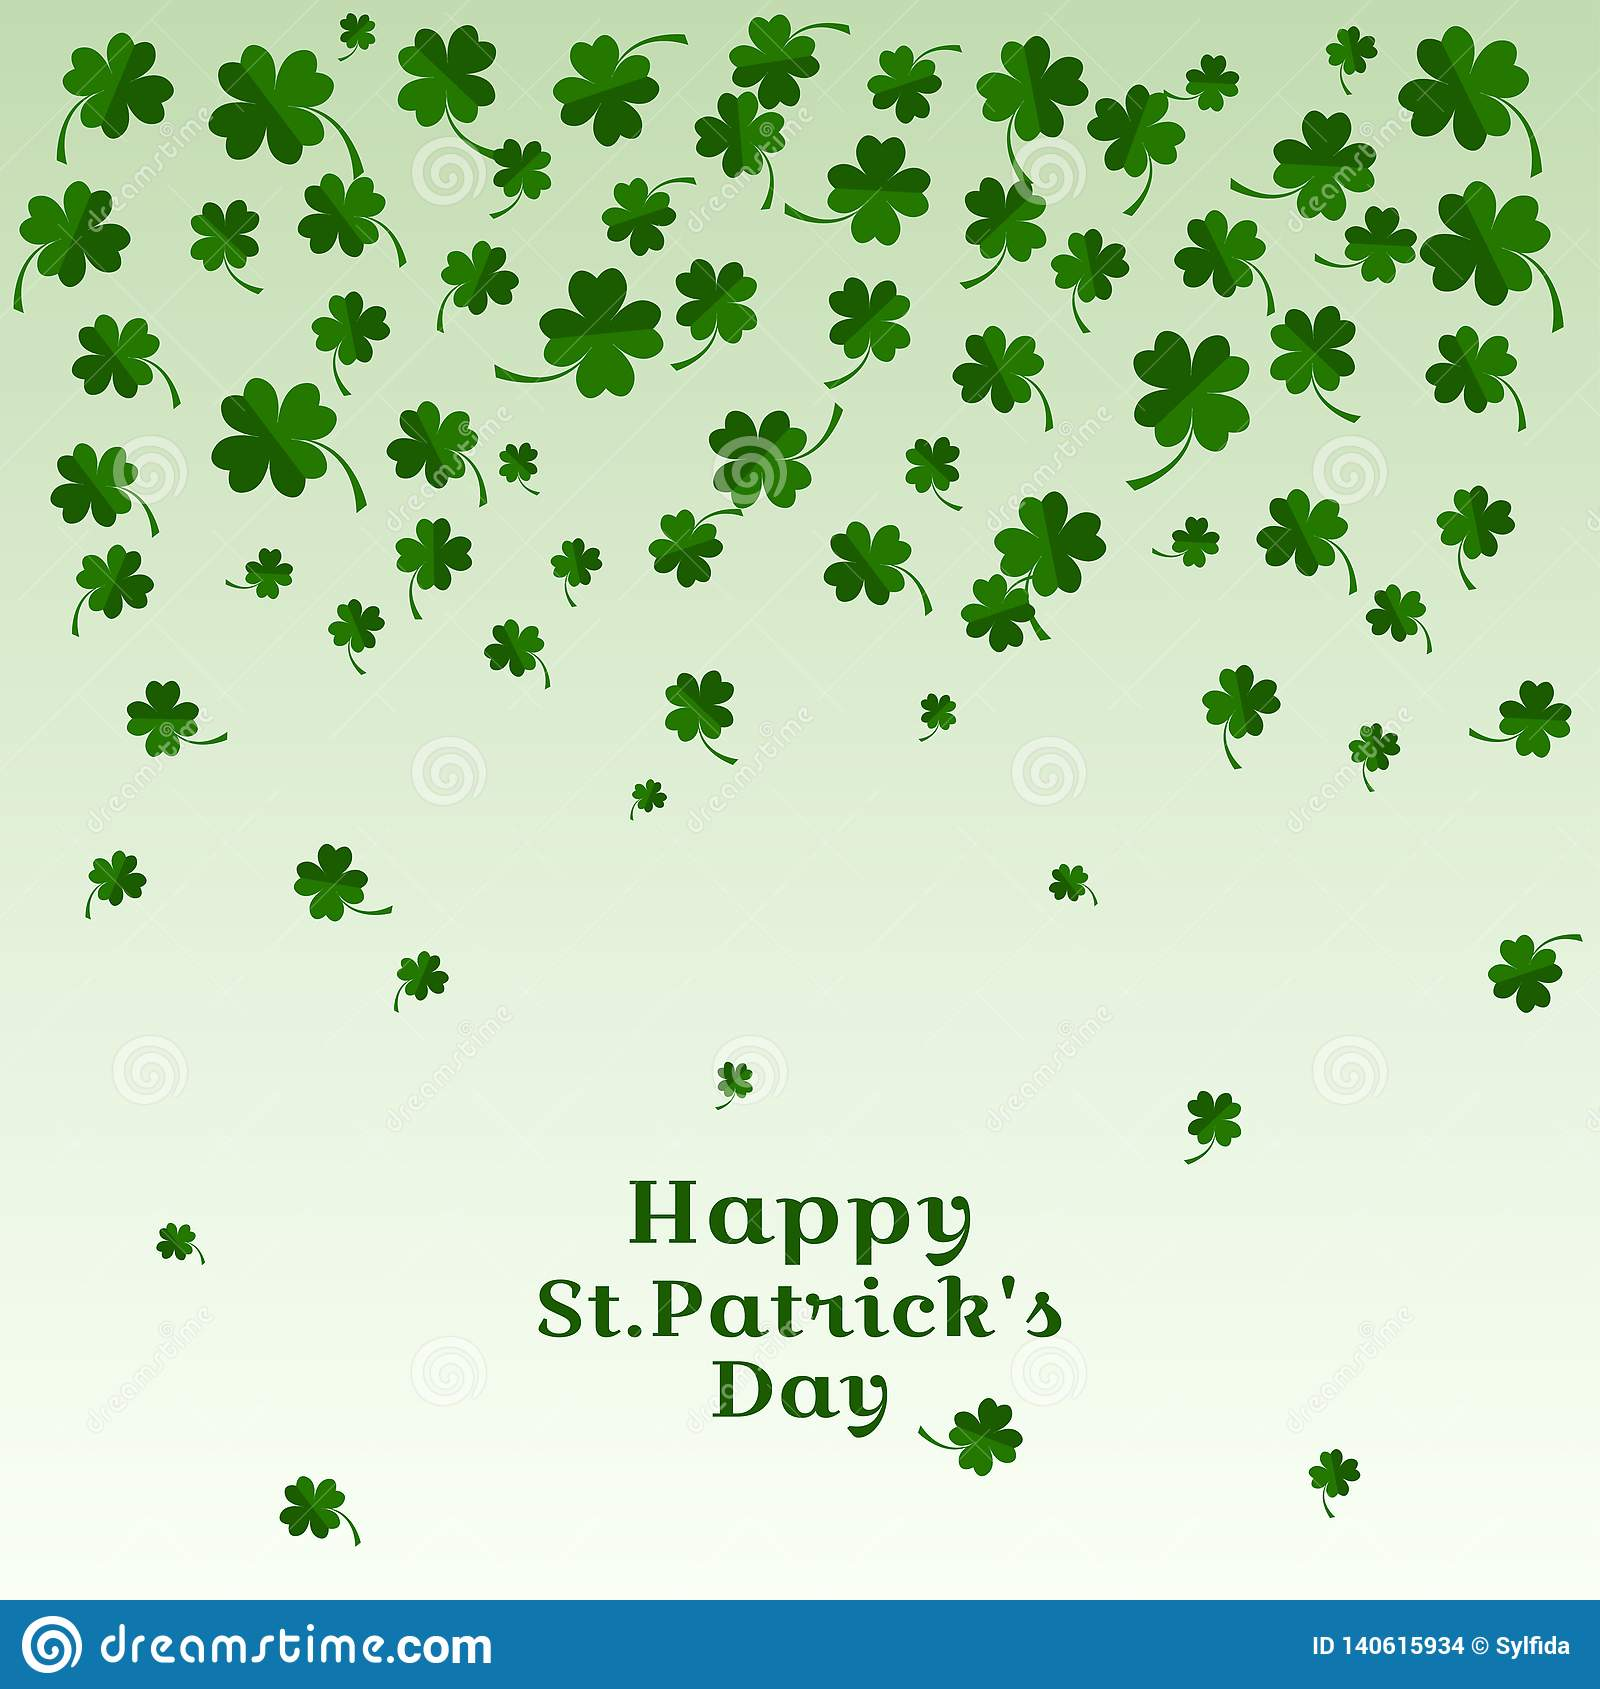 Falling leaves of clover with inscription Happy St. Patricks Day. Vector illustration